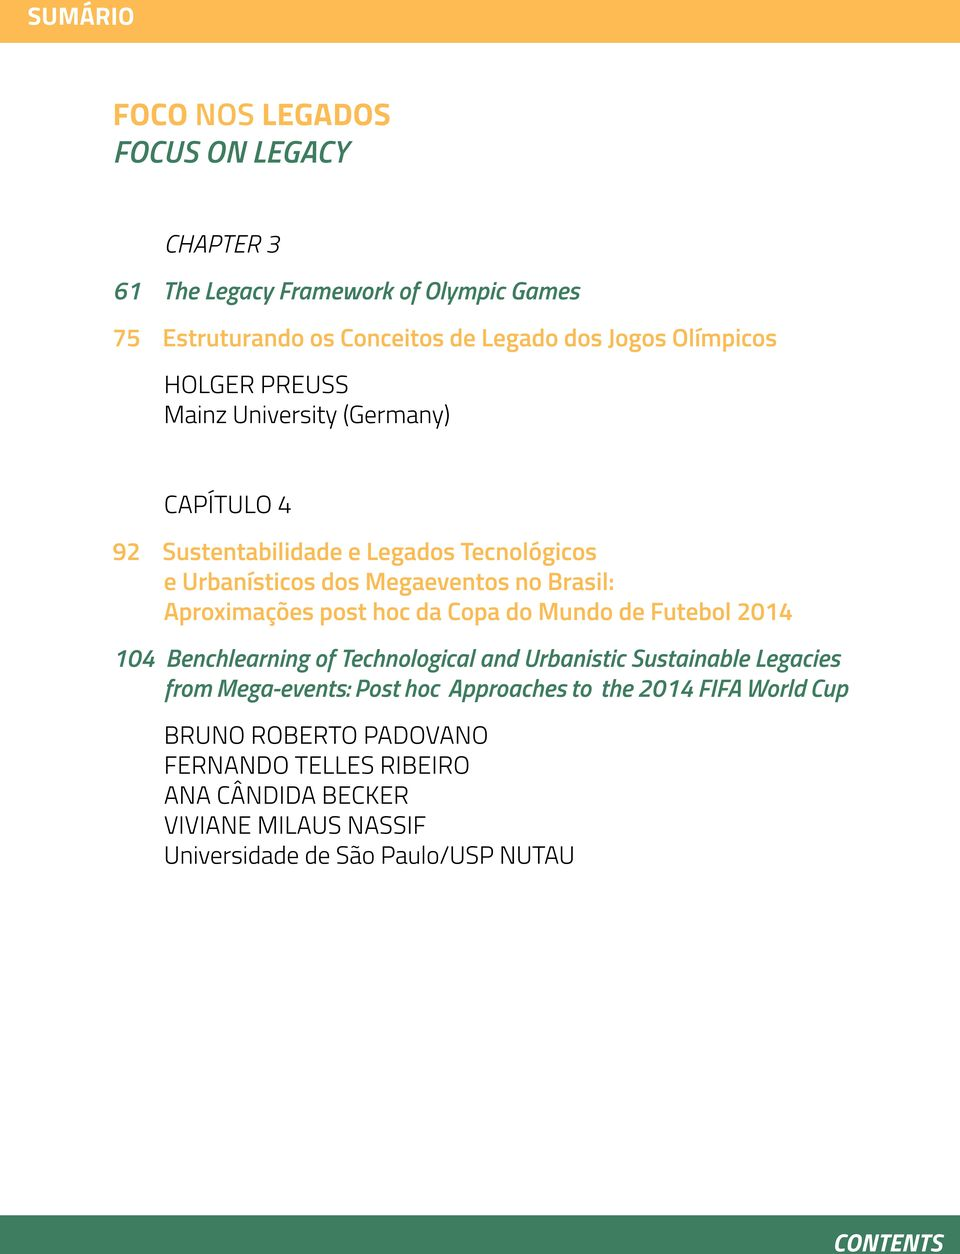 post hoc da Copa do Mundo de Futebol 2014 104 Benchlearning of Technological and Urbanistic Sustainable Legacies from Mega-events: Post hoc Approaches